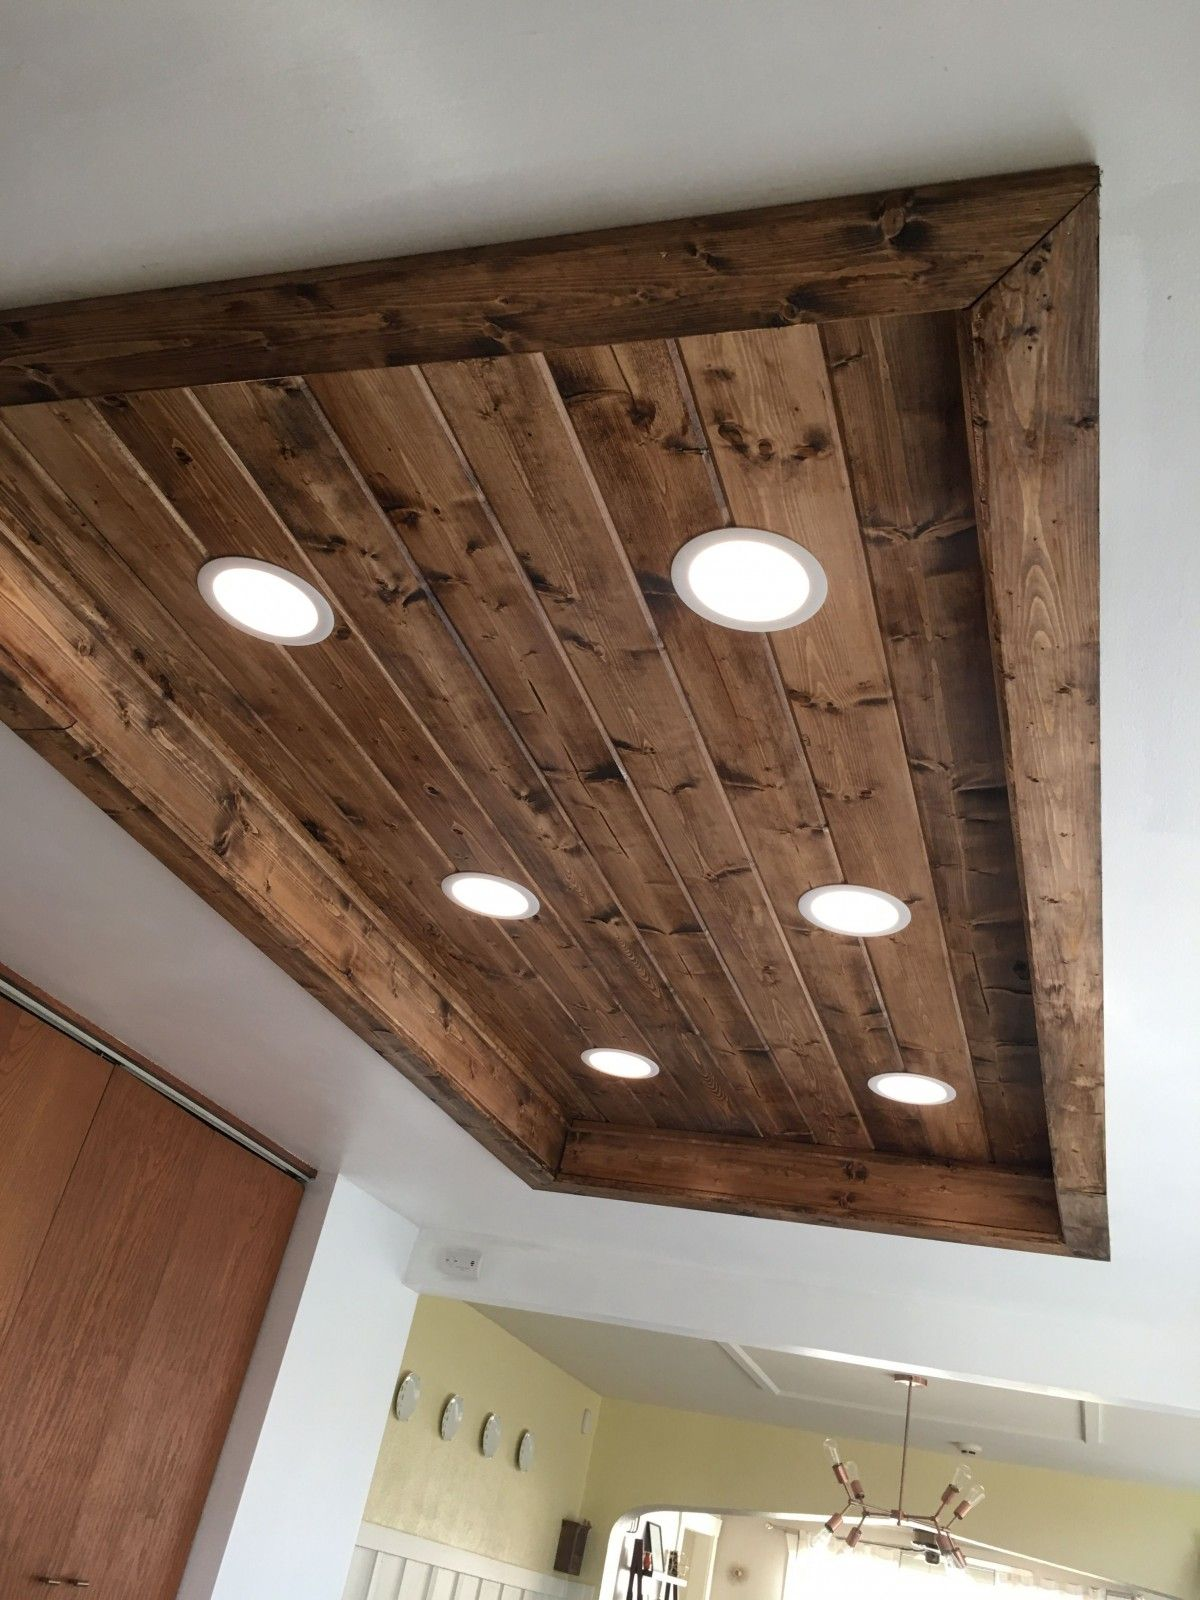 Kitchen Ceiling Ideas Kitchen Ceiling Ideas Vaulted And 3d Drop Ceiling Small Kitchen Lighting Kitchen Ceiling Lights Lighting Makeover Drop lighting for kitchen